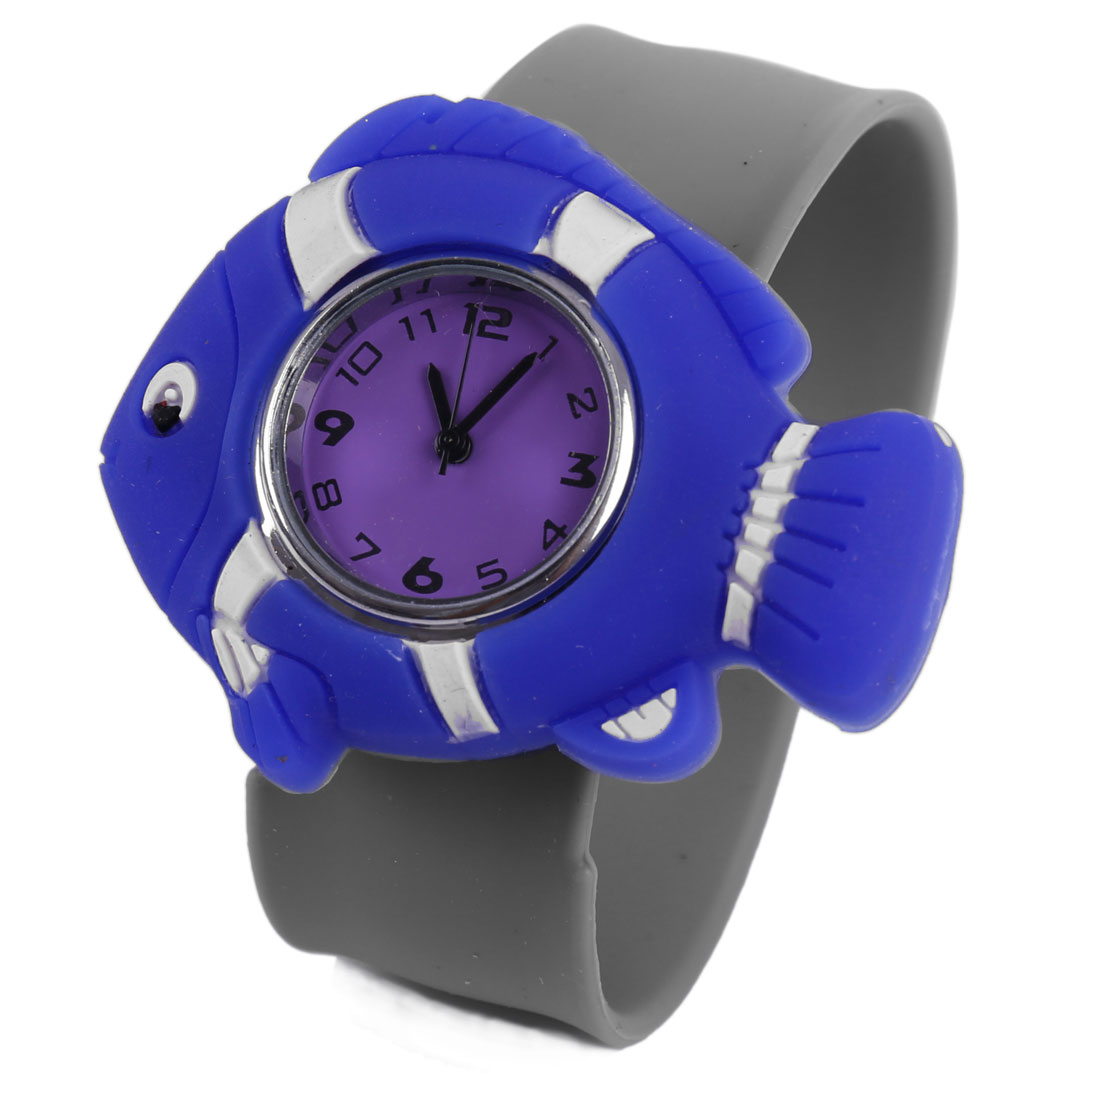 Cute Blue 3D Cartoon Fish Dial Design Light Gray Band Watch for Kids